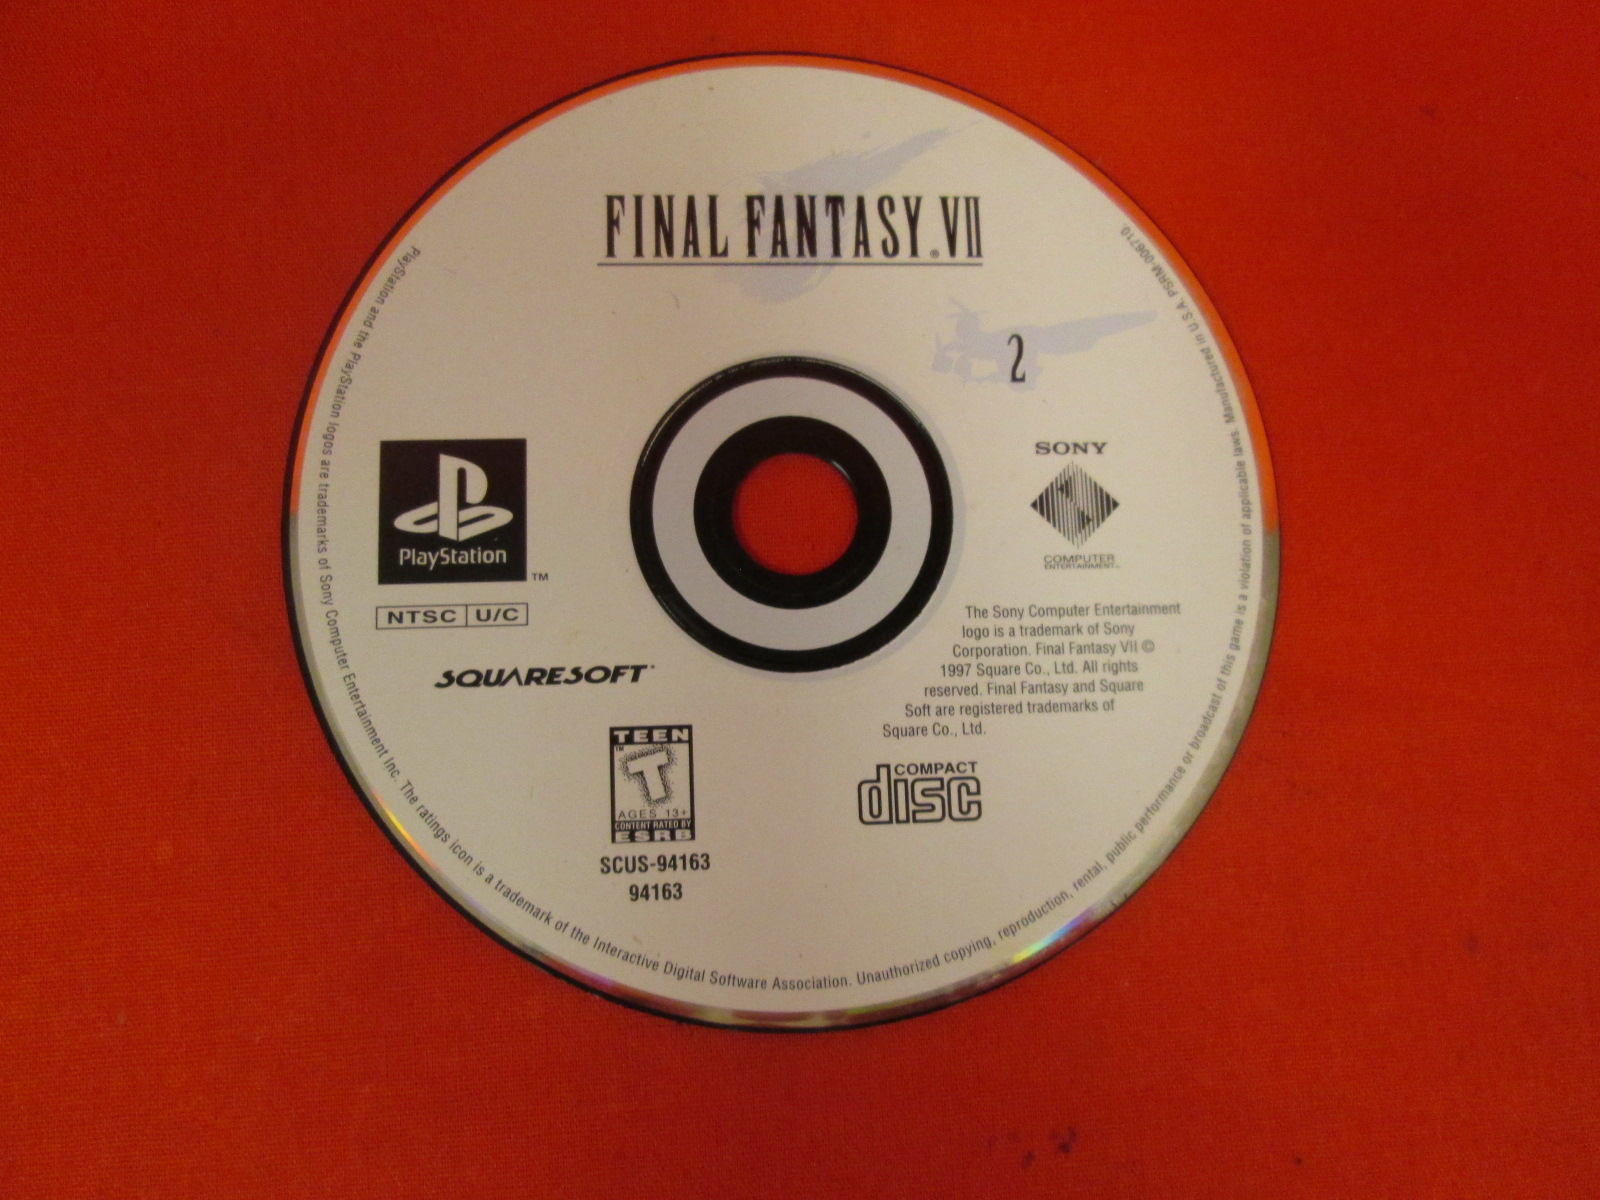 Replacement Disc 2 For Final Fantasy VII For PlayStation 1 Incomplete